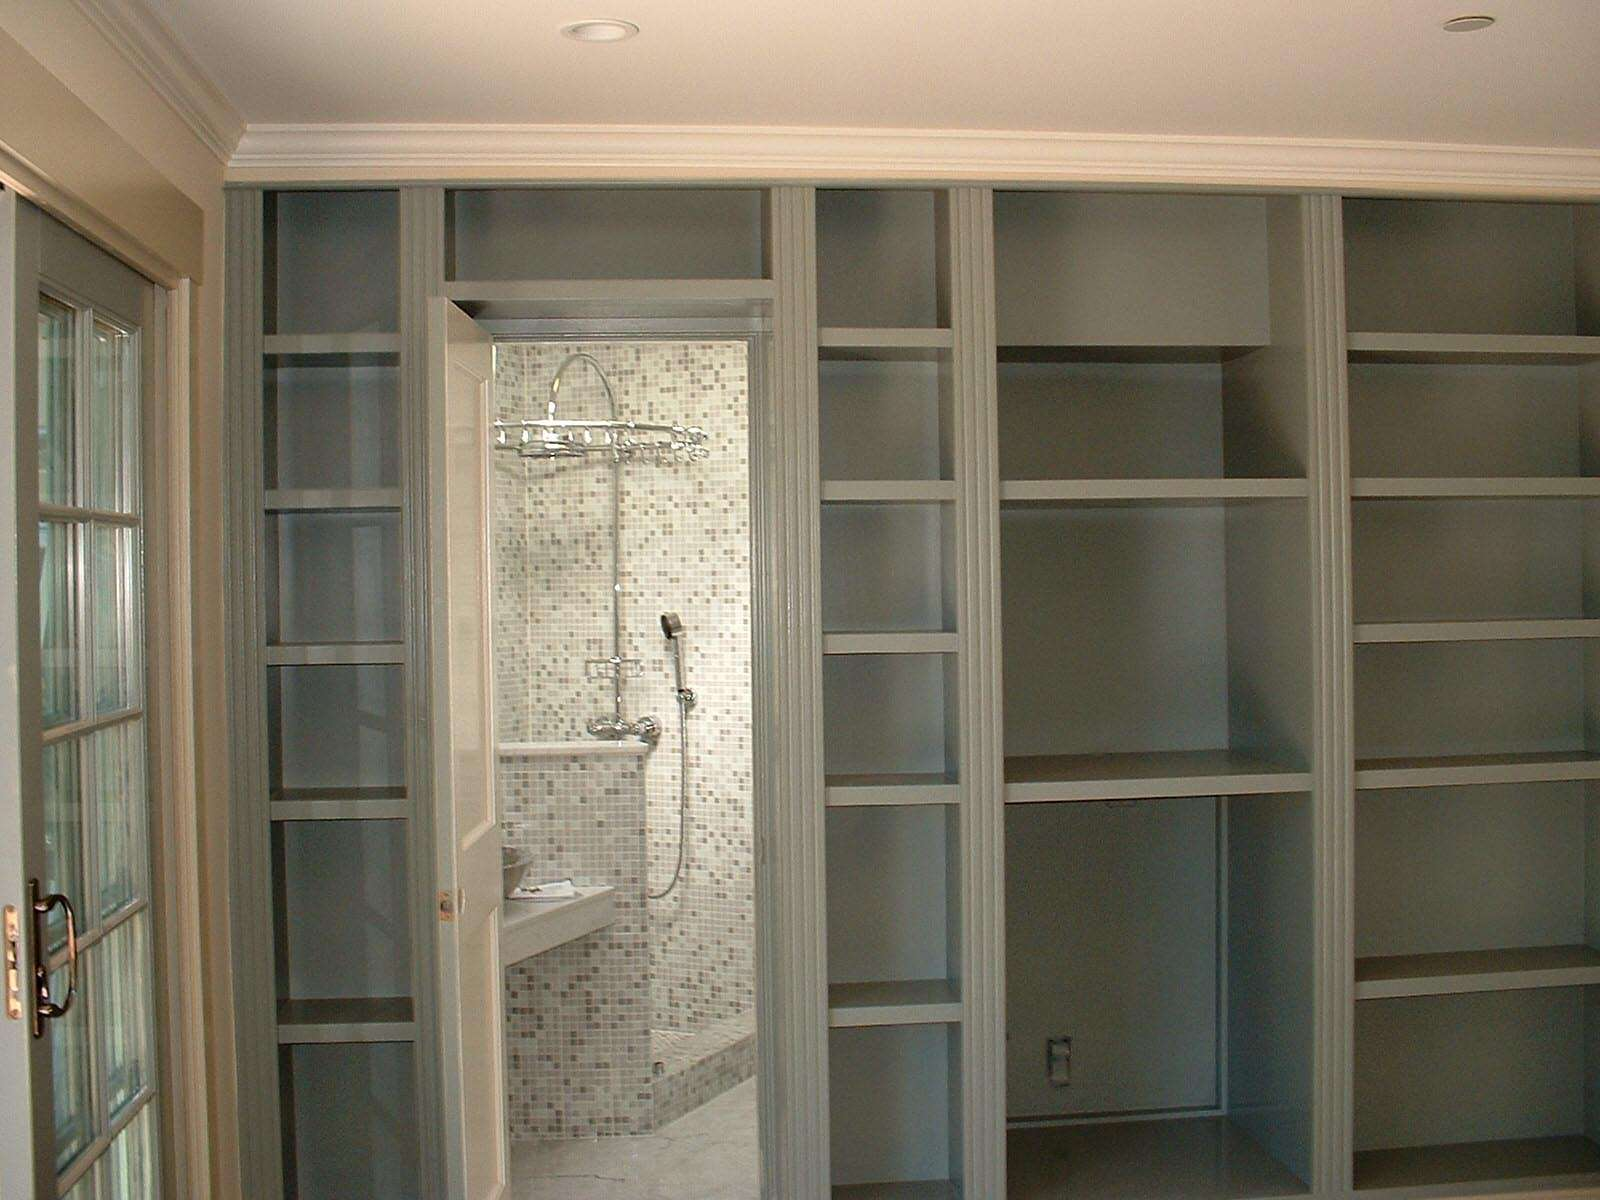 Pictures Of Built In Bookcases Built Bookcases Special Intimate Storage Lentine Marine 46212